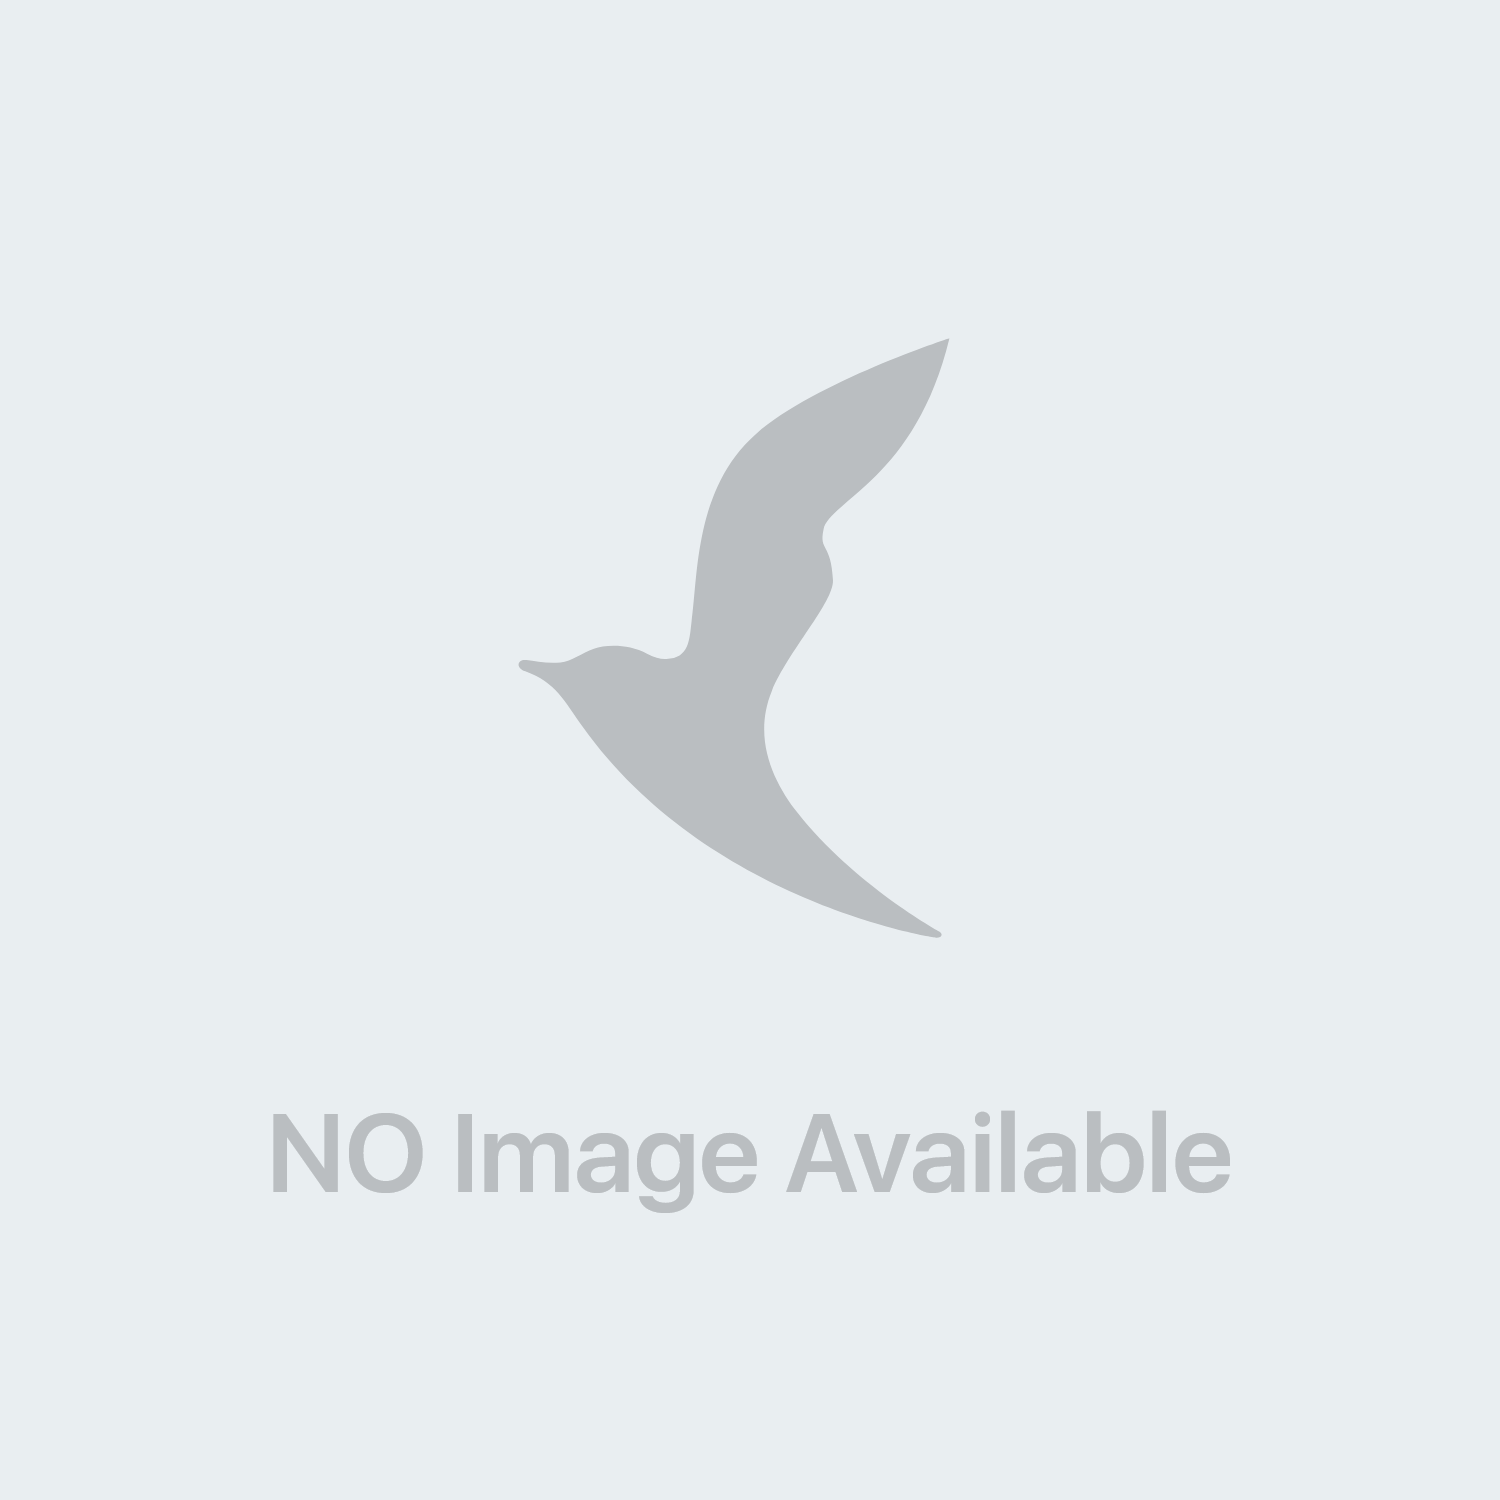 Chifa Dog Totalin Integratore Vitamine Cani 450 Gr